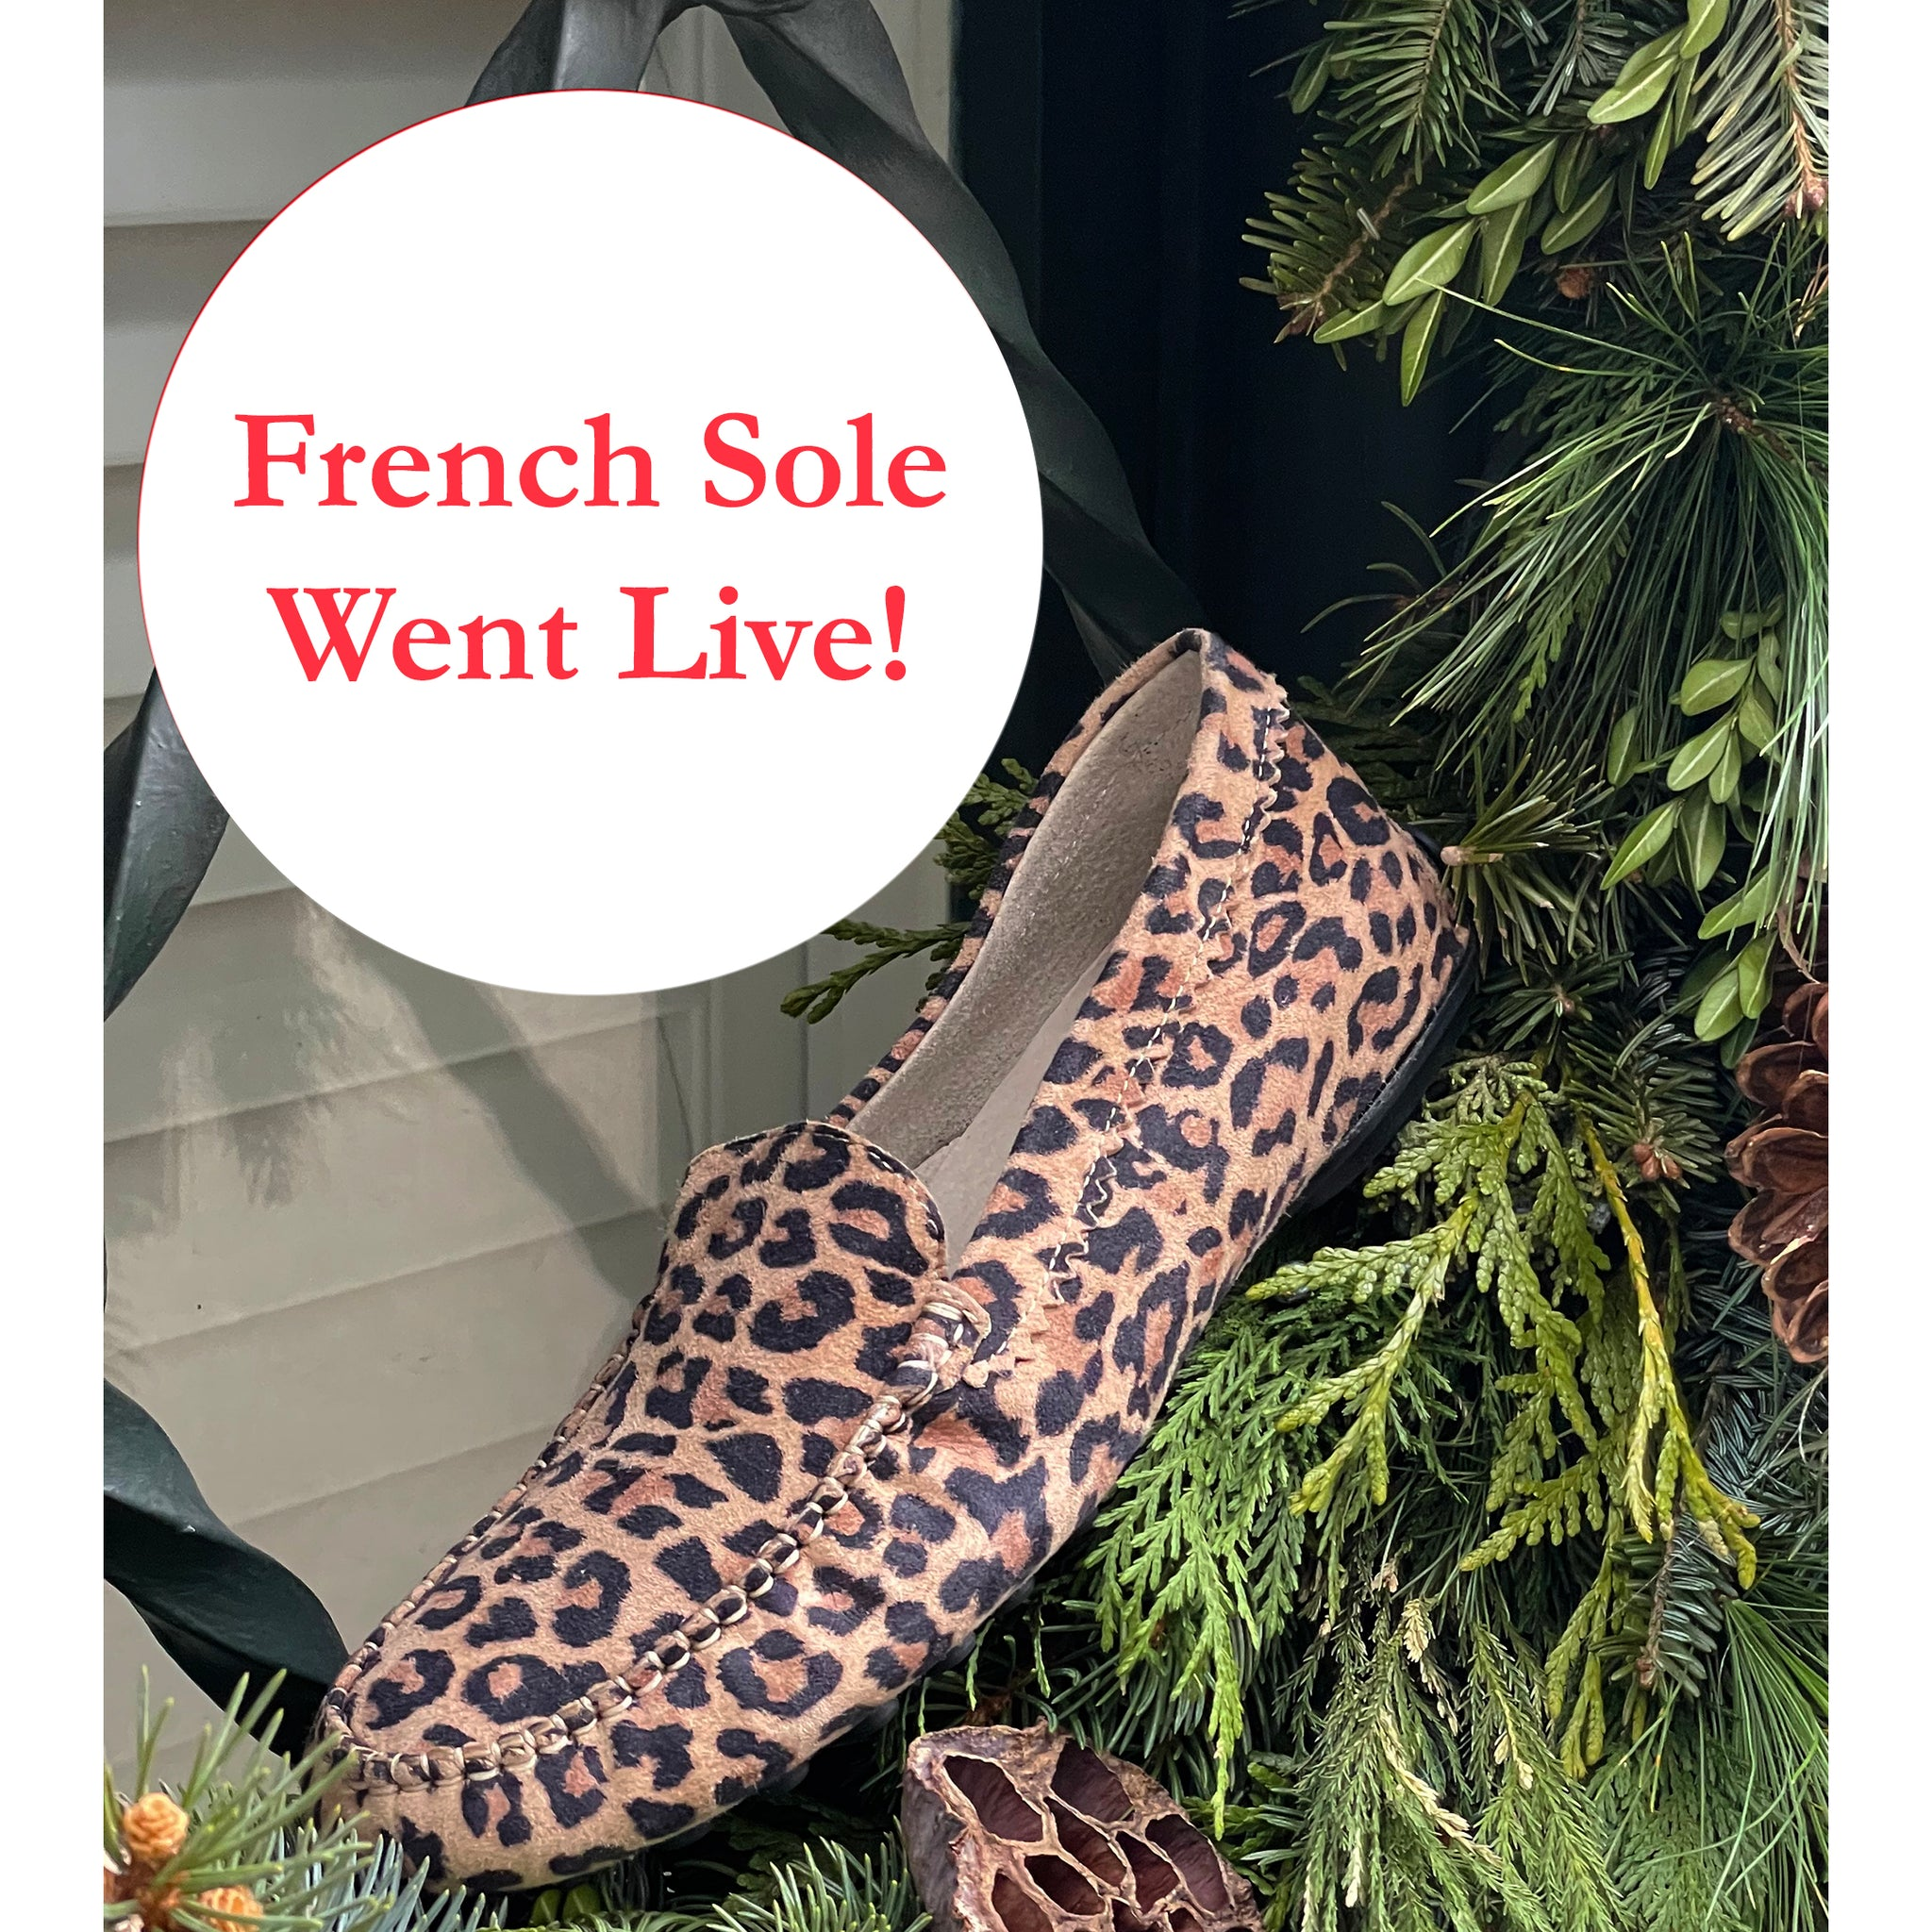 French Sole Went Live!